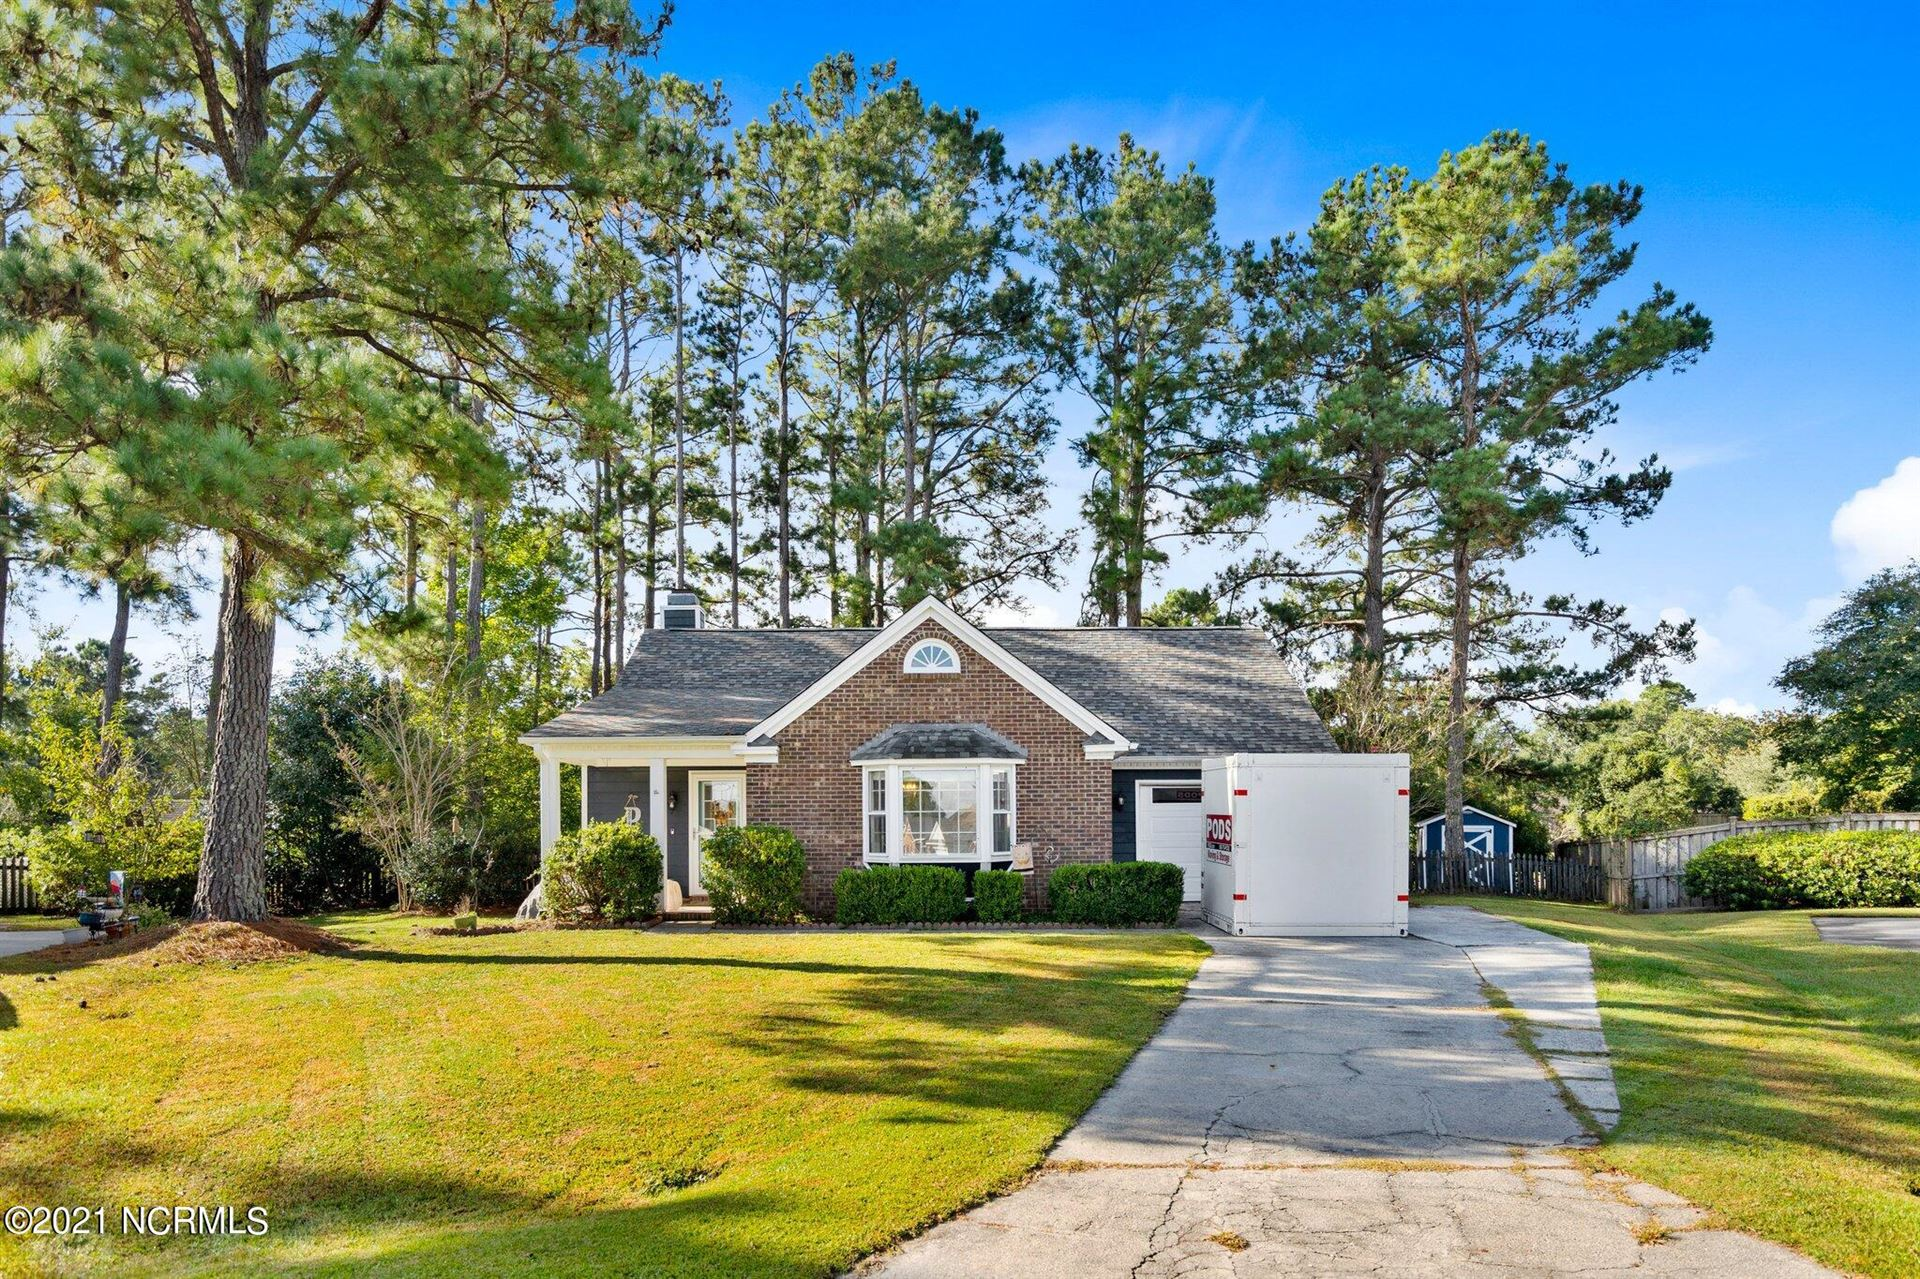 Photo of 2943 New Town Drive, Wilmington, NC 28405 (MLS # 100296038)